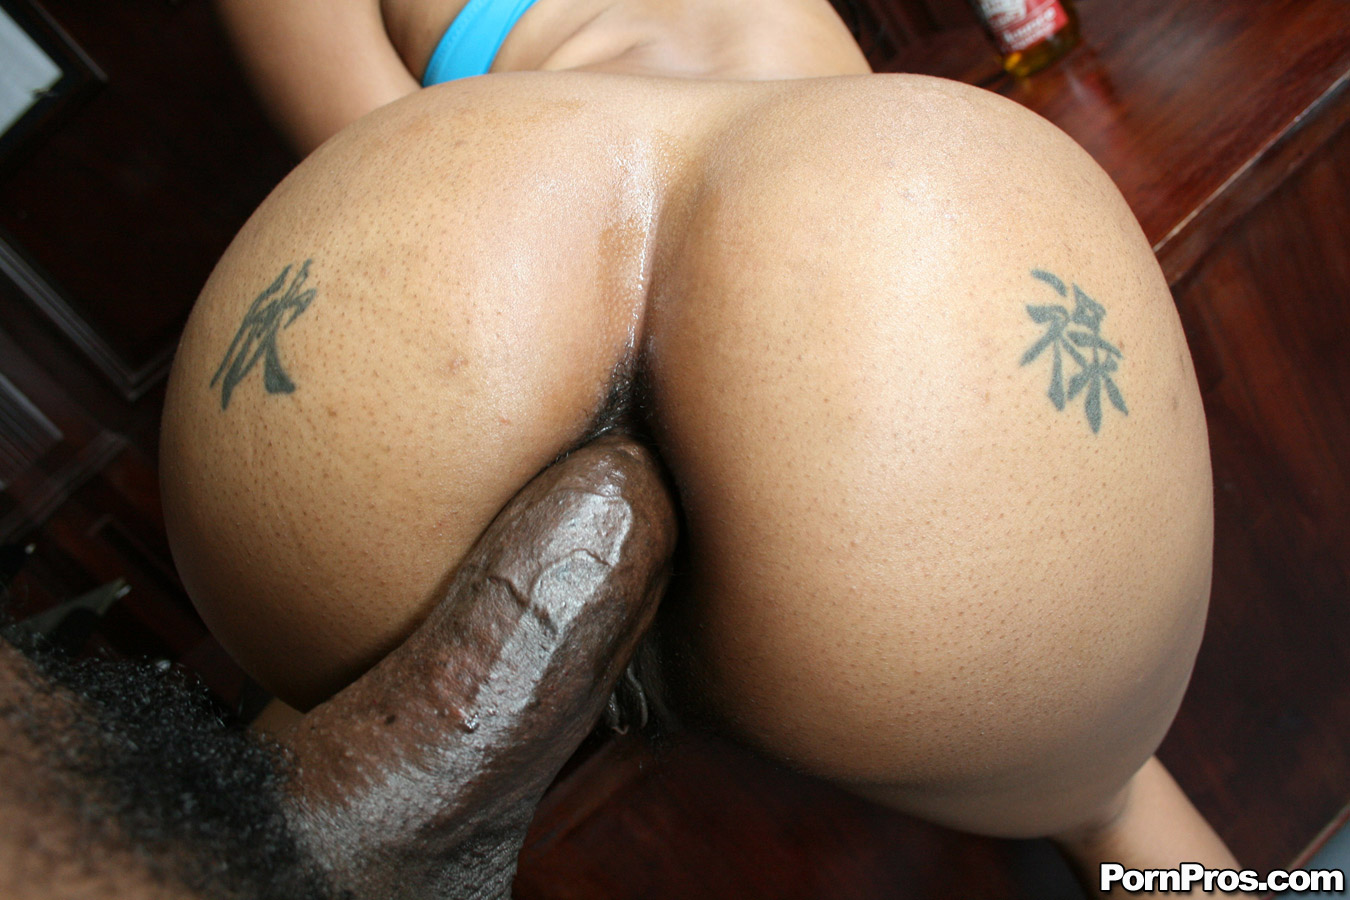 Black girl asian guys gangbang